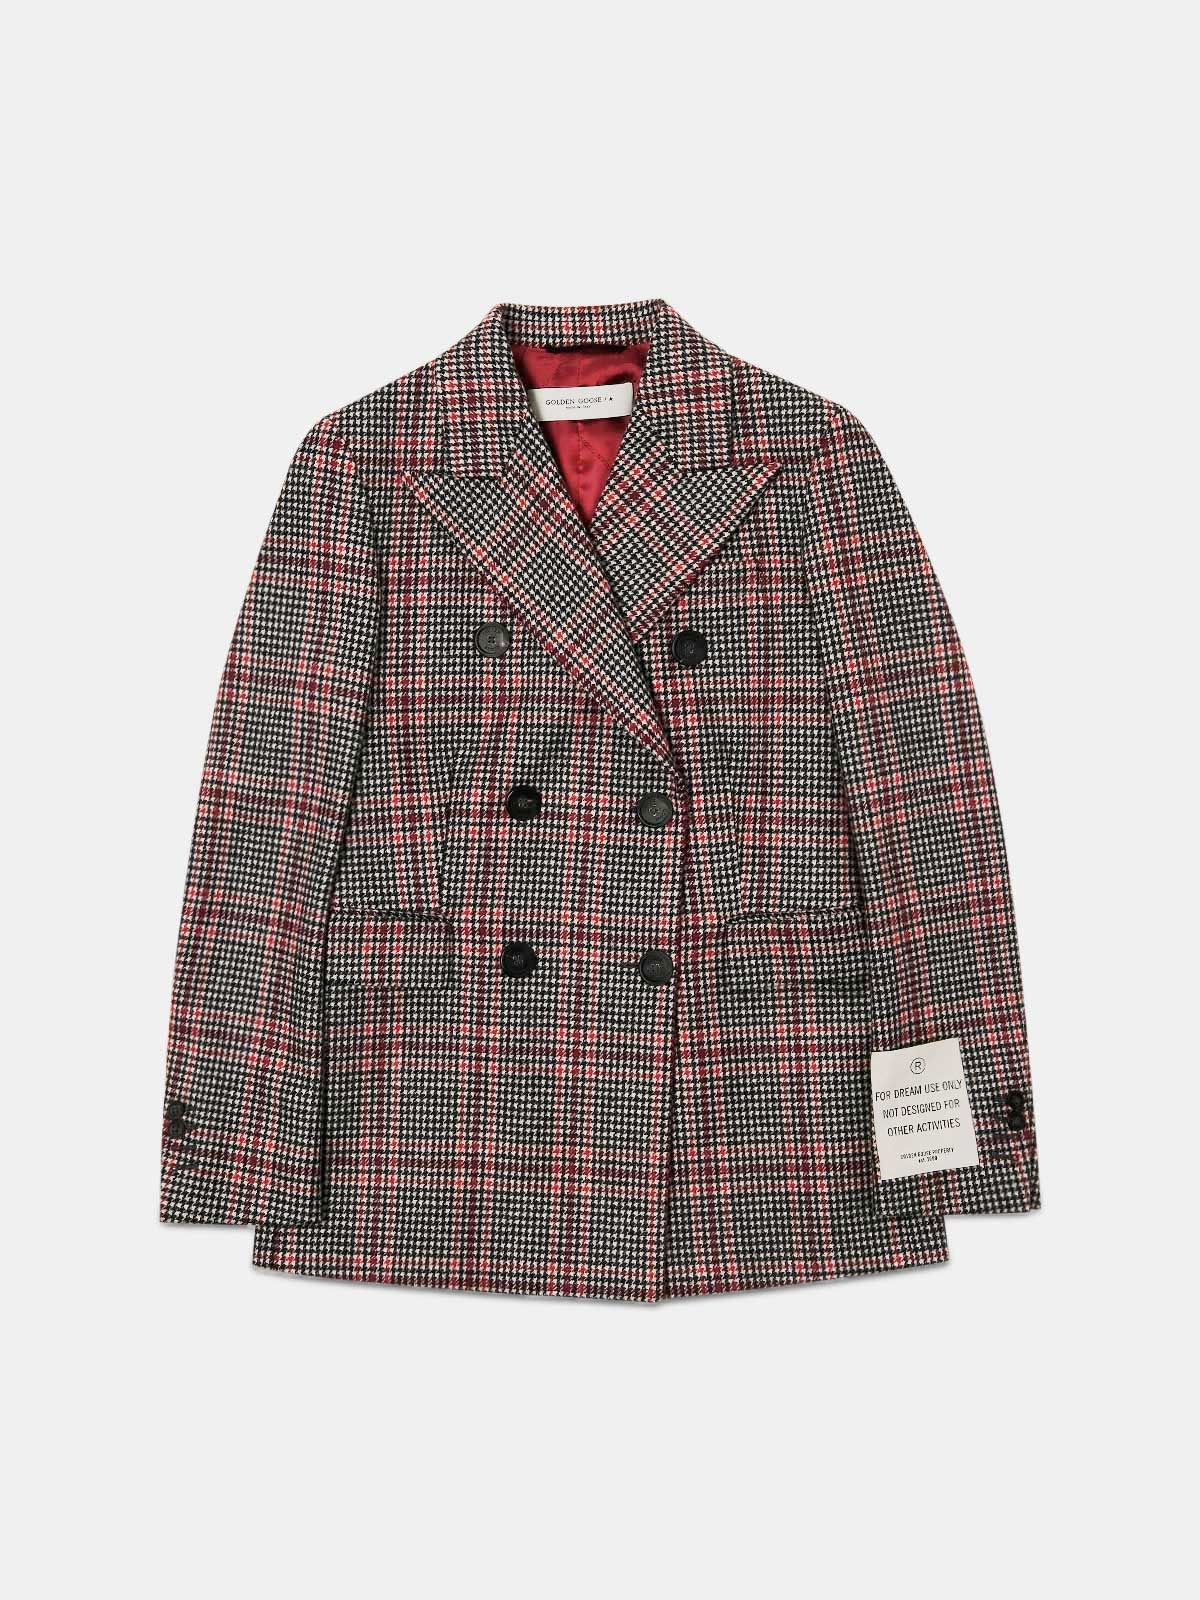 Annabella double-breasted blazer with houndstooth tartan pattern